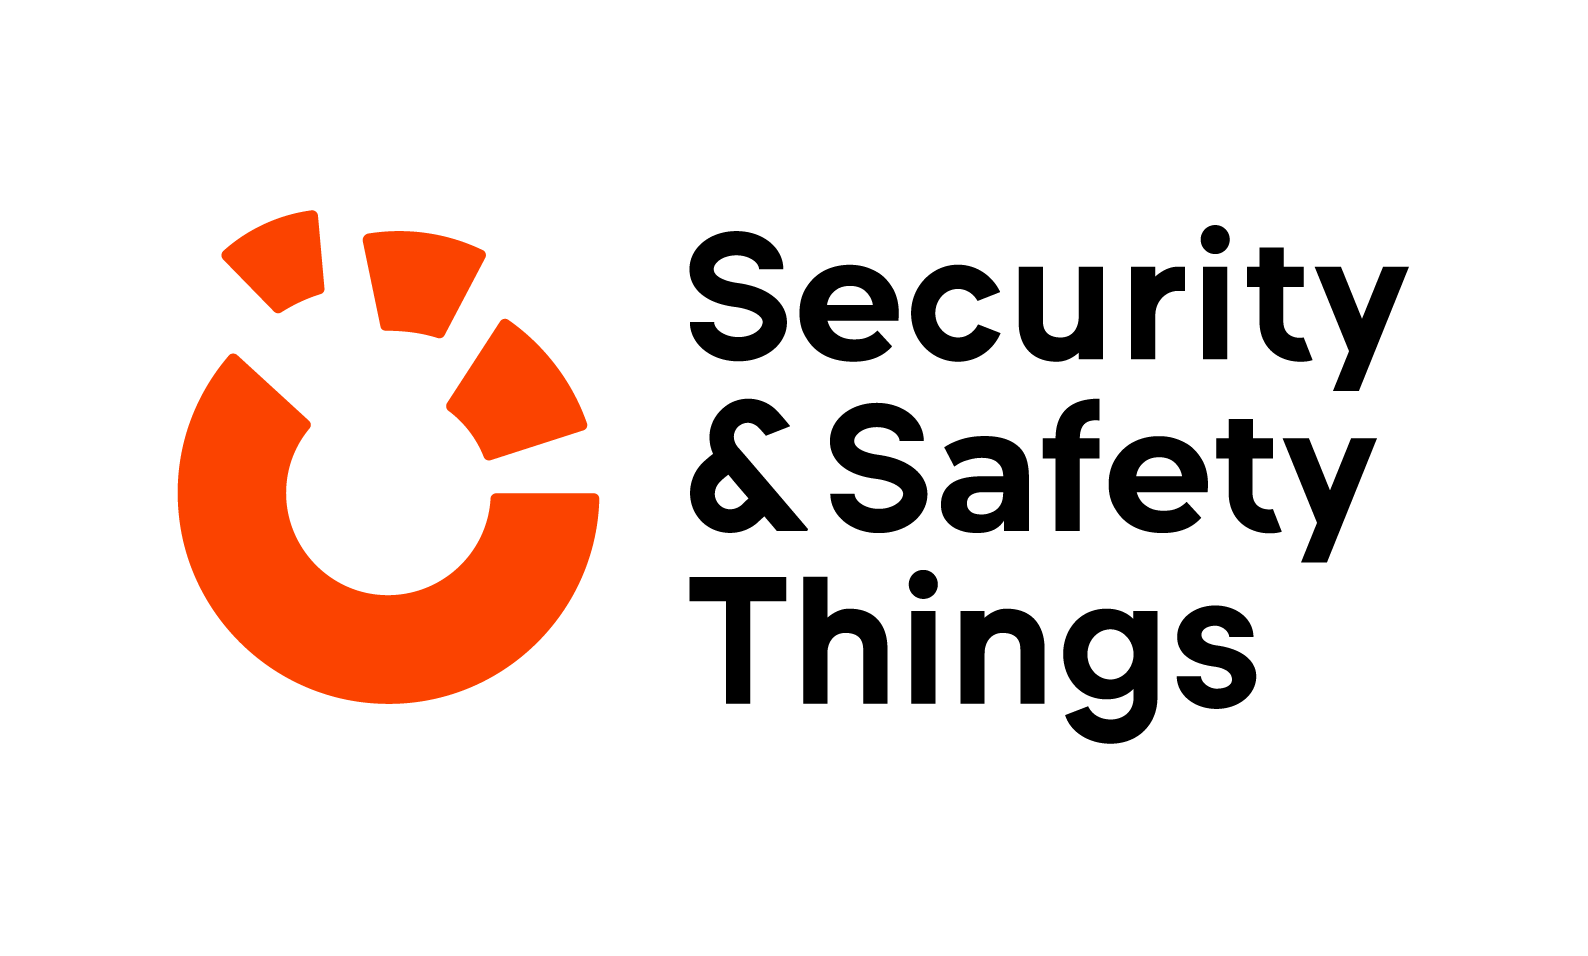 #739 | Security and Safety Things B.V.